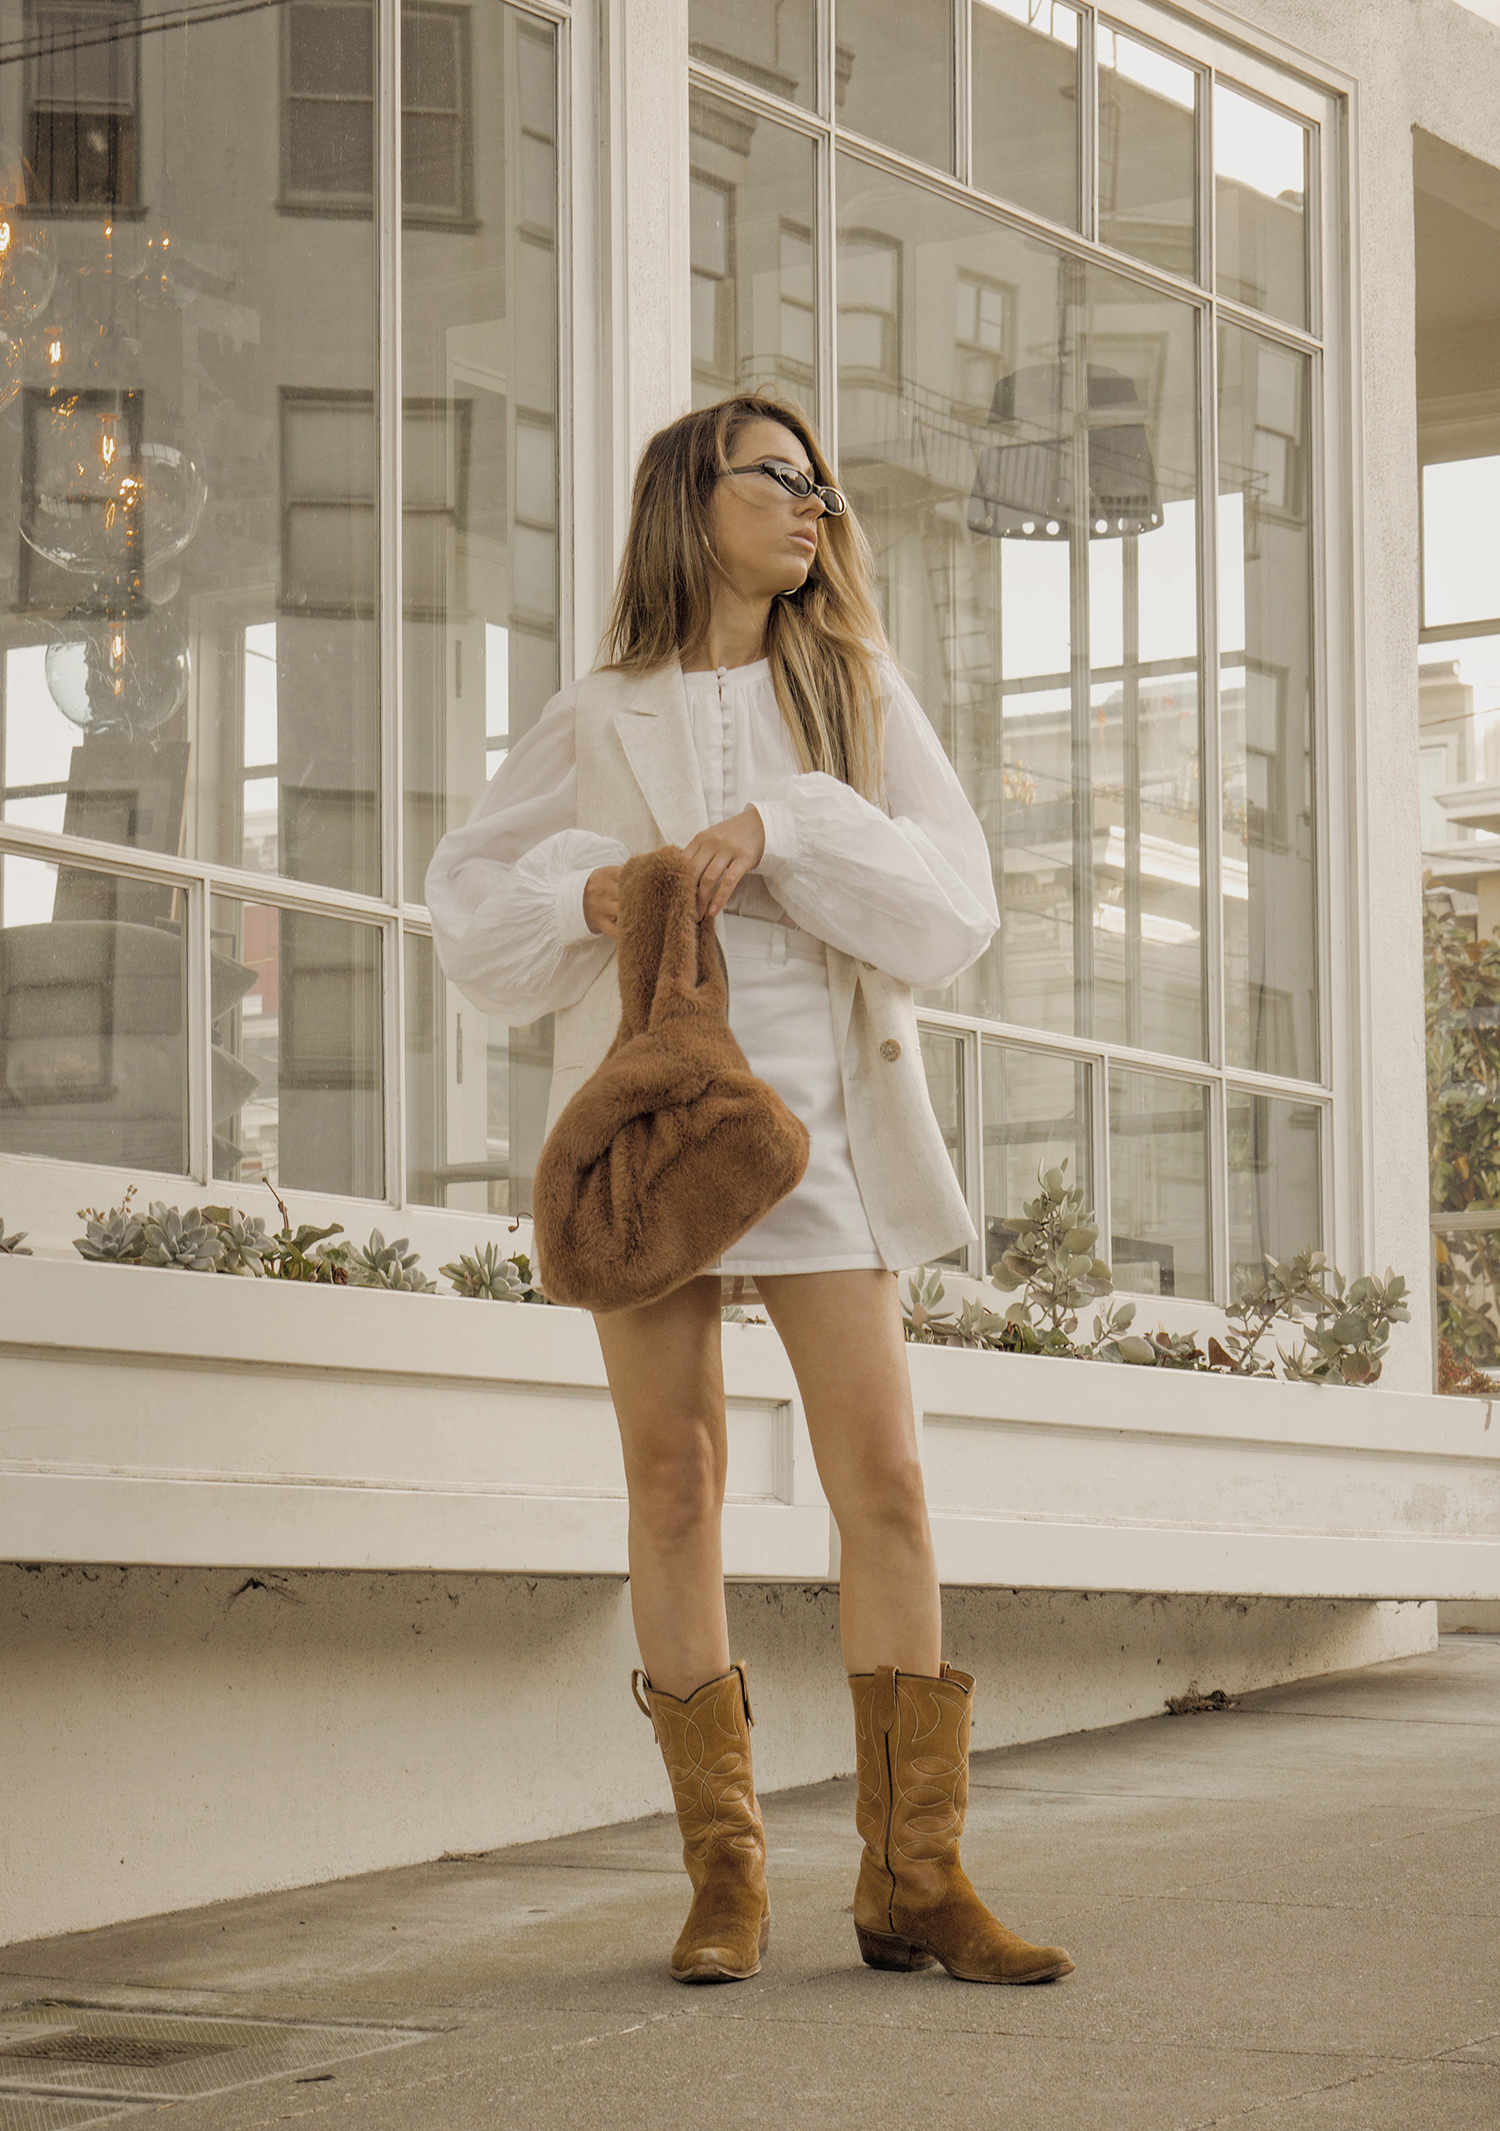 total_all_white_outfit_look_street_style_western_boots_isabel_marant_inspired_fur_bag_vest_denim_skirt_summer_2018_trend_lena_juice_the_white_ocean_08